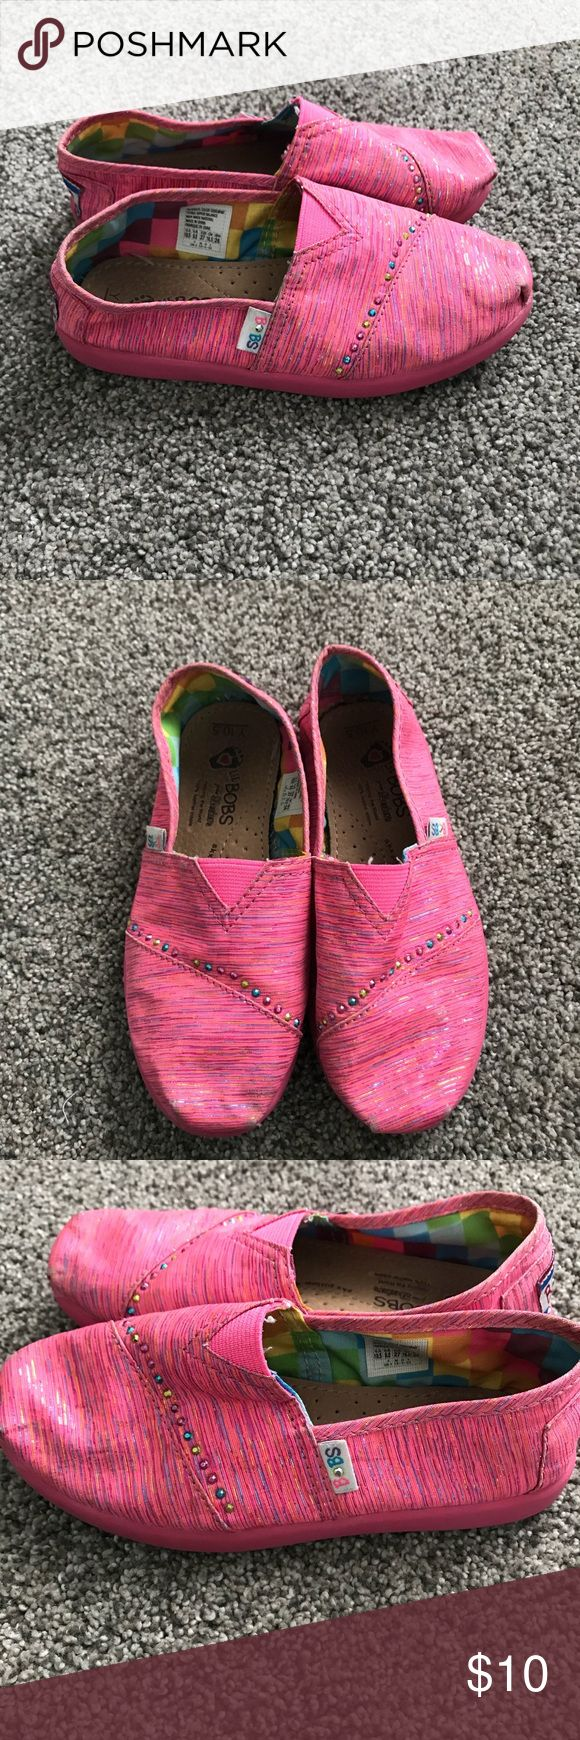 Girls lil Bobs from Skechers size 10.5 Girls lil Bobs from Skechers slip on shoes size 10.5 bright pink with colored glitter and jewels! Smoke free home! bobs from Skechers Shoes Sandals & Flip Flops